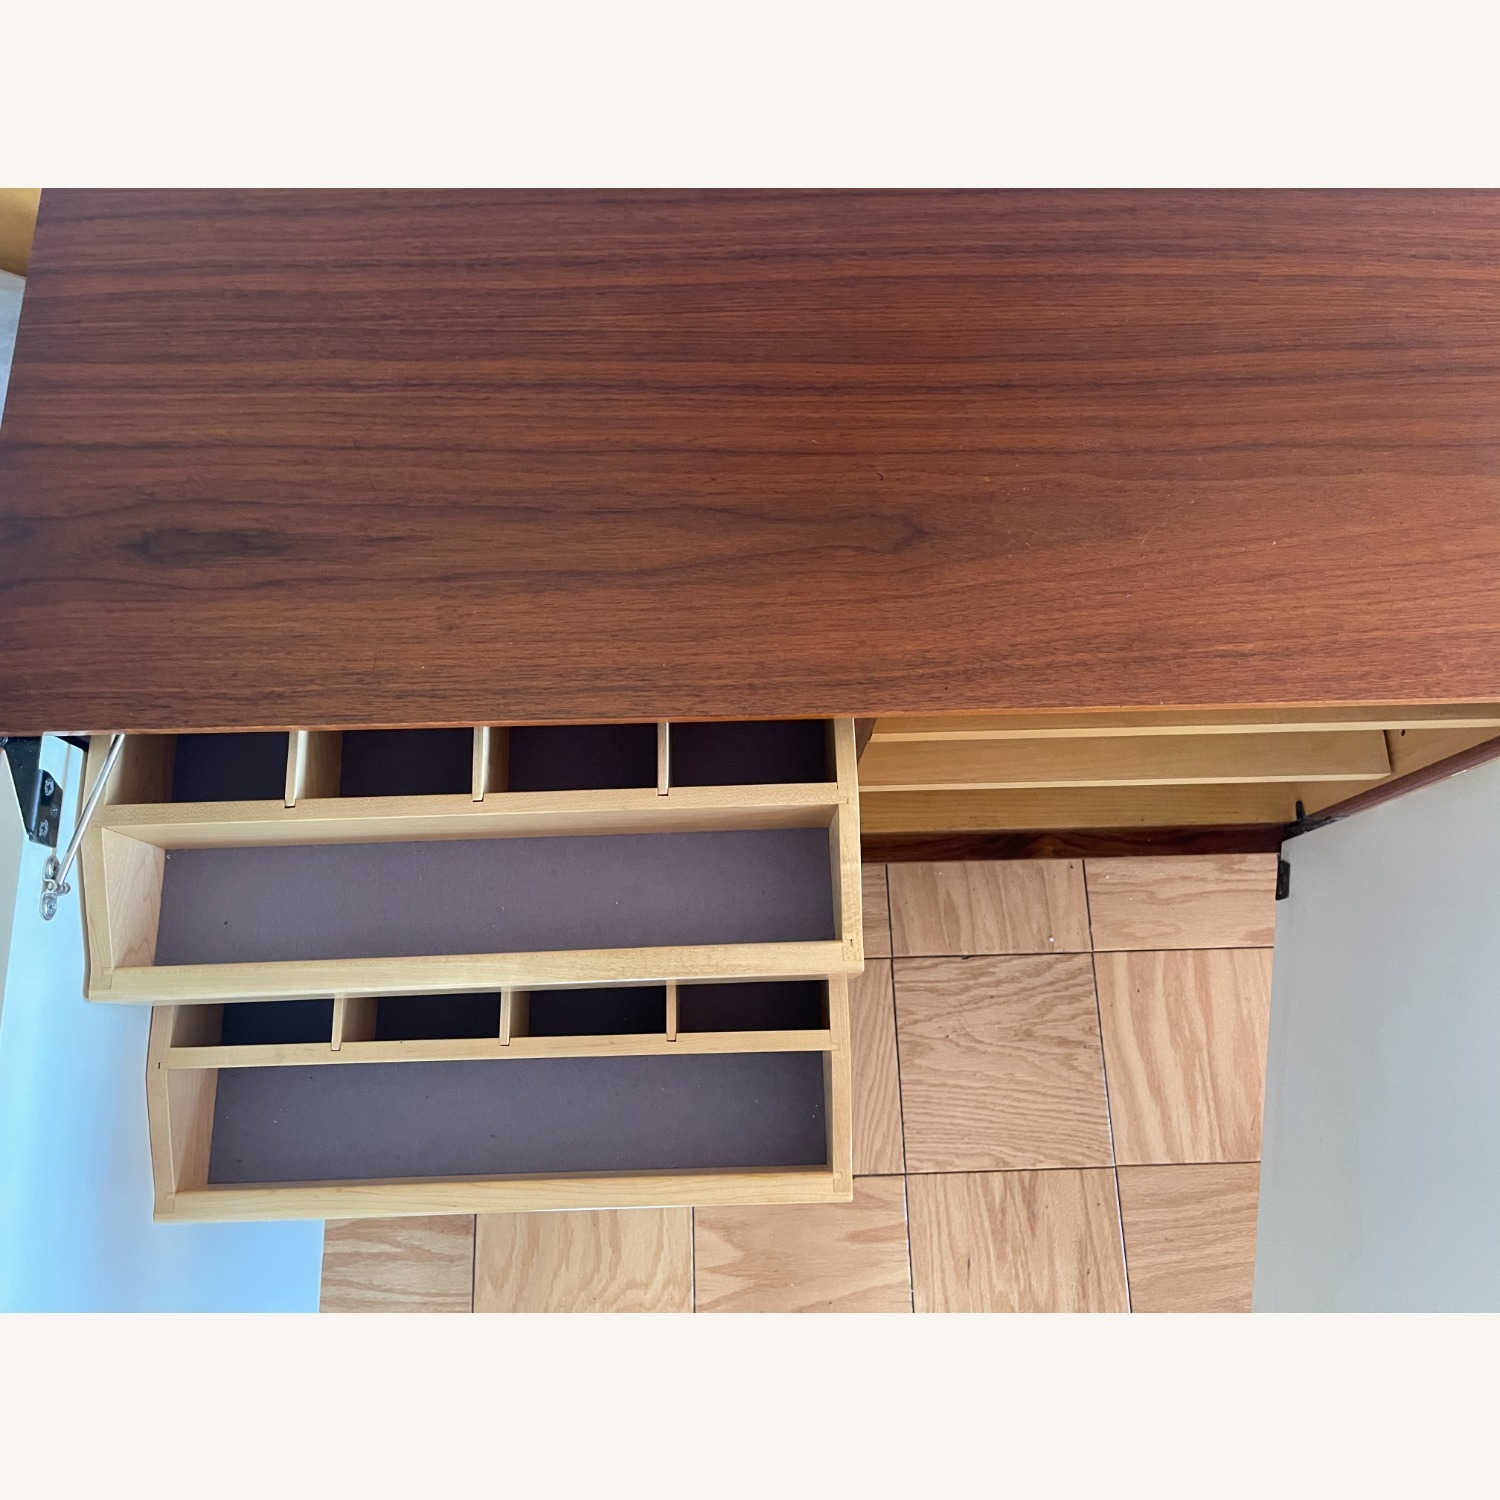 Vintage Florence Knoll Mid-Century Credenza - image-13